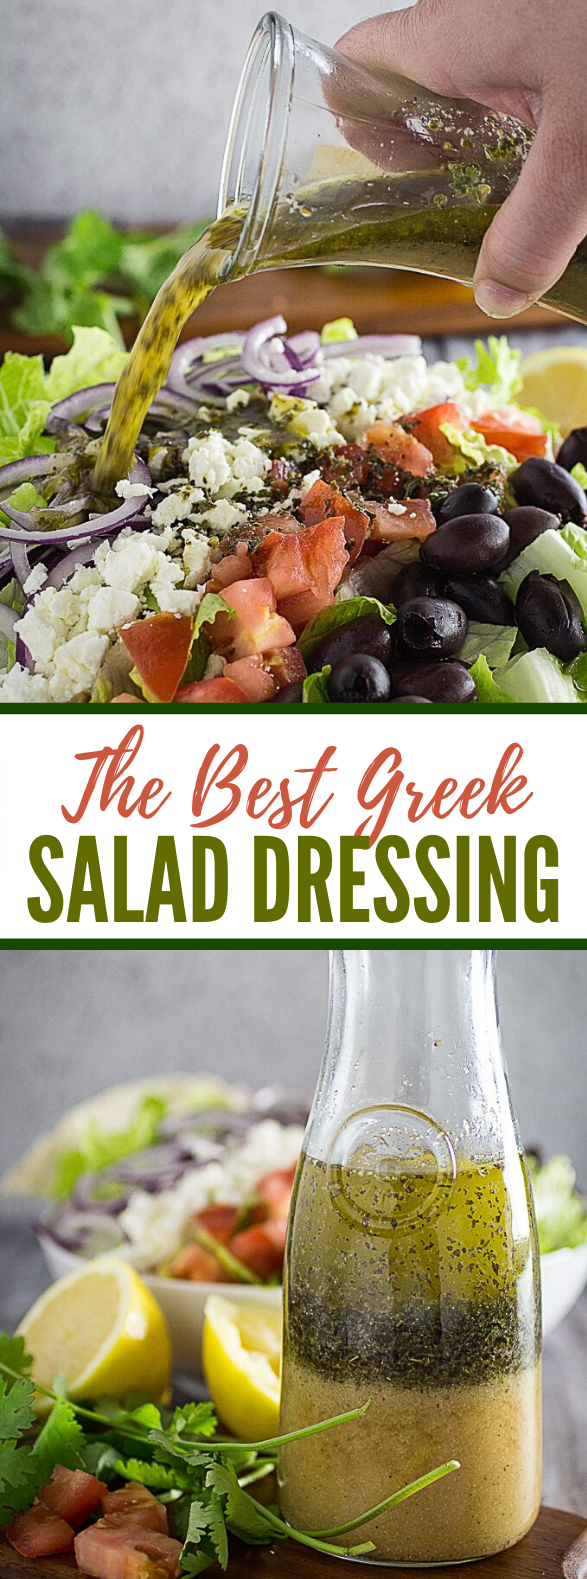 GREEK SALAD DRESSING & GREEK SALAD #vegetarian #veggies